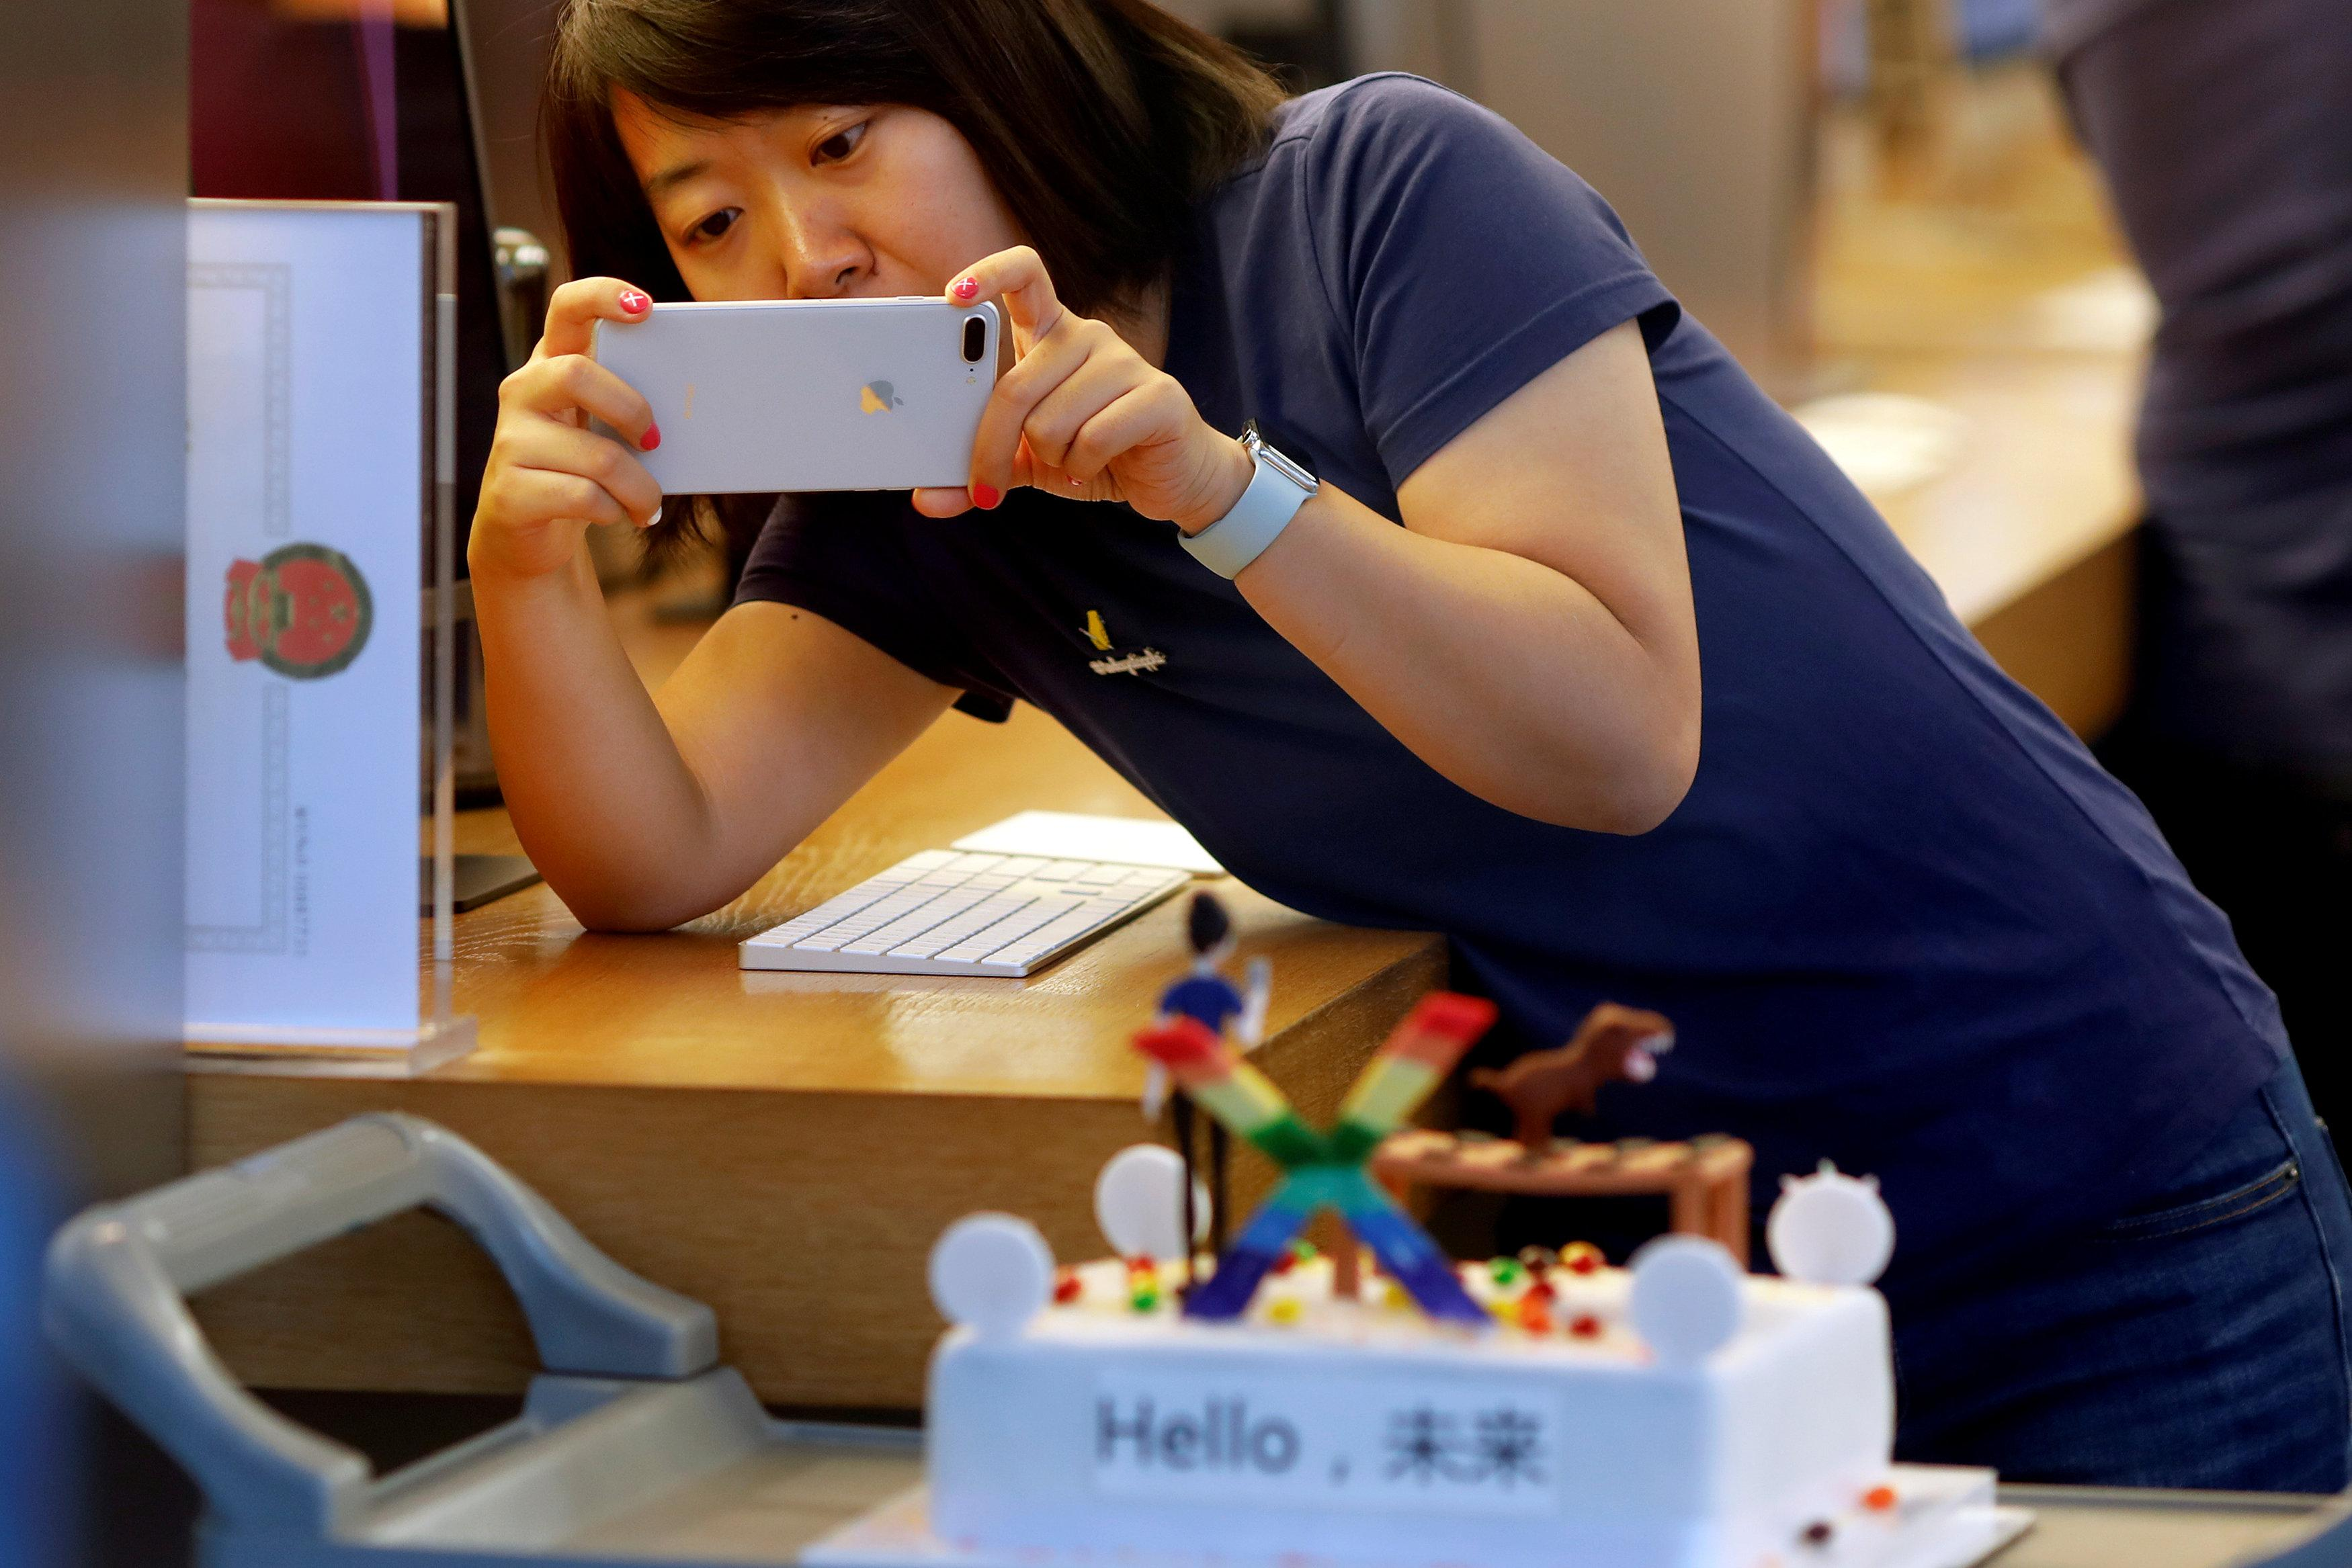 A member of Apple staff takes pictures as new iPhone X begins to sell at an Apple Store in Beijing, China November 3, 2017. Damir Sagolj